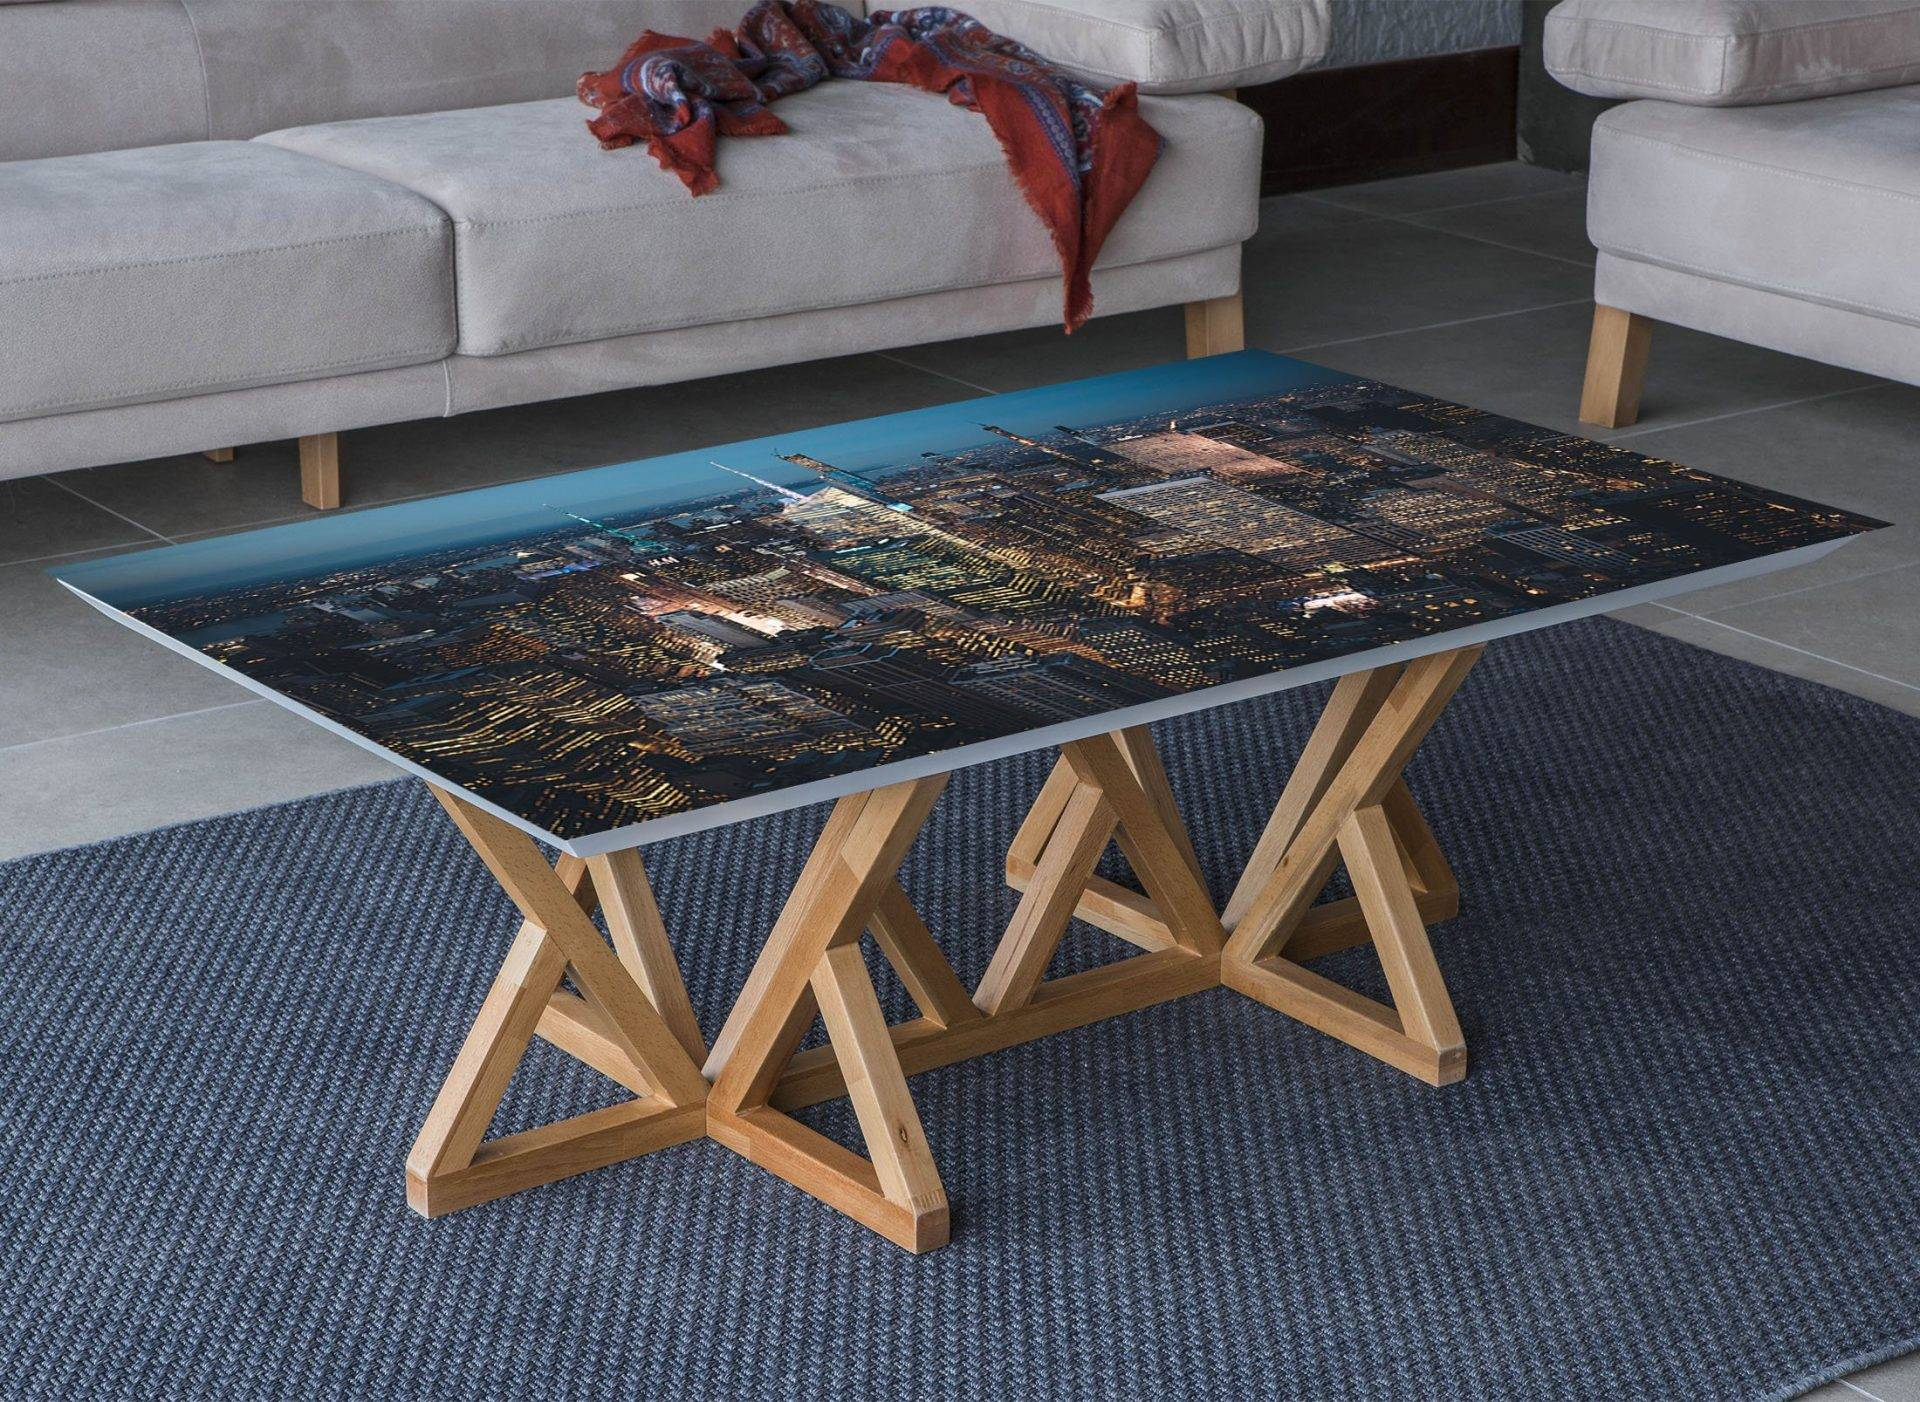 New York at Night View Laminated Vinyl Cover Self-Adhesive for Desk and Tables